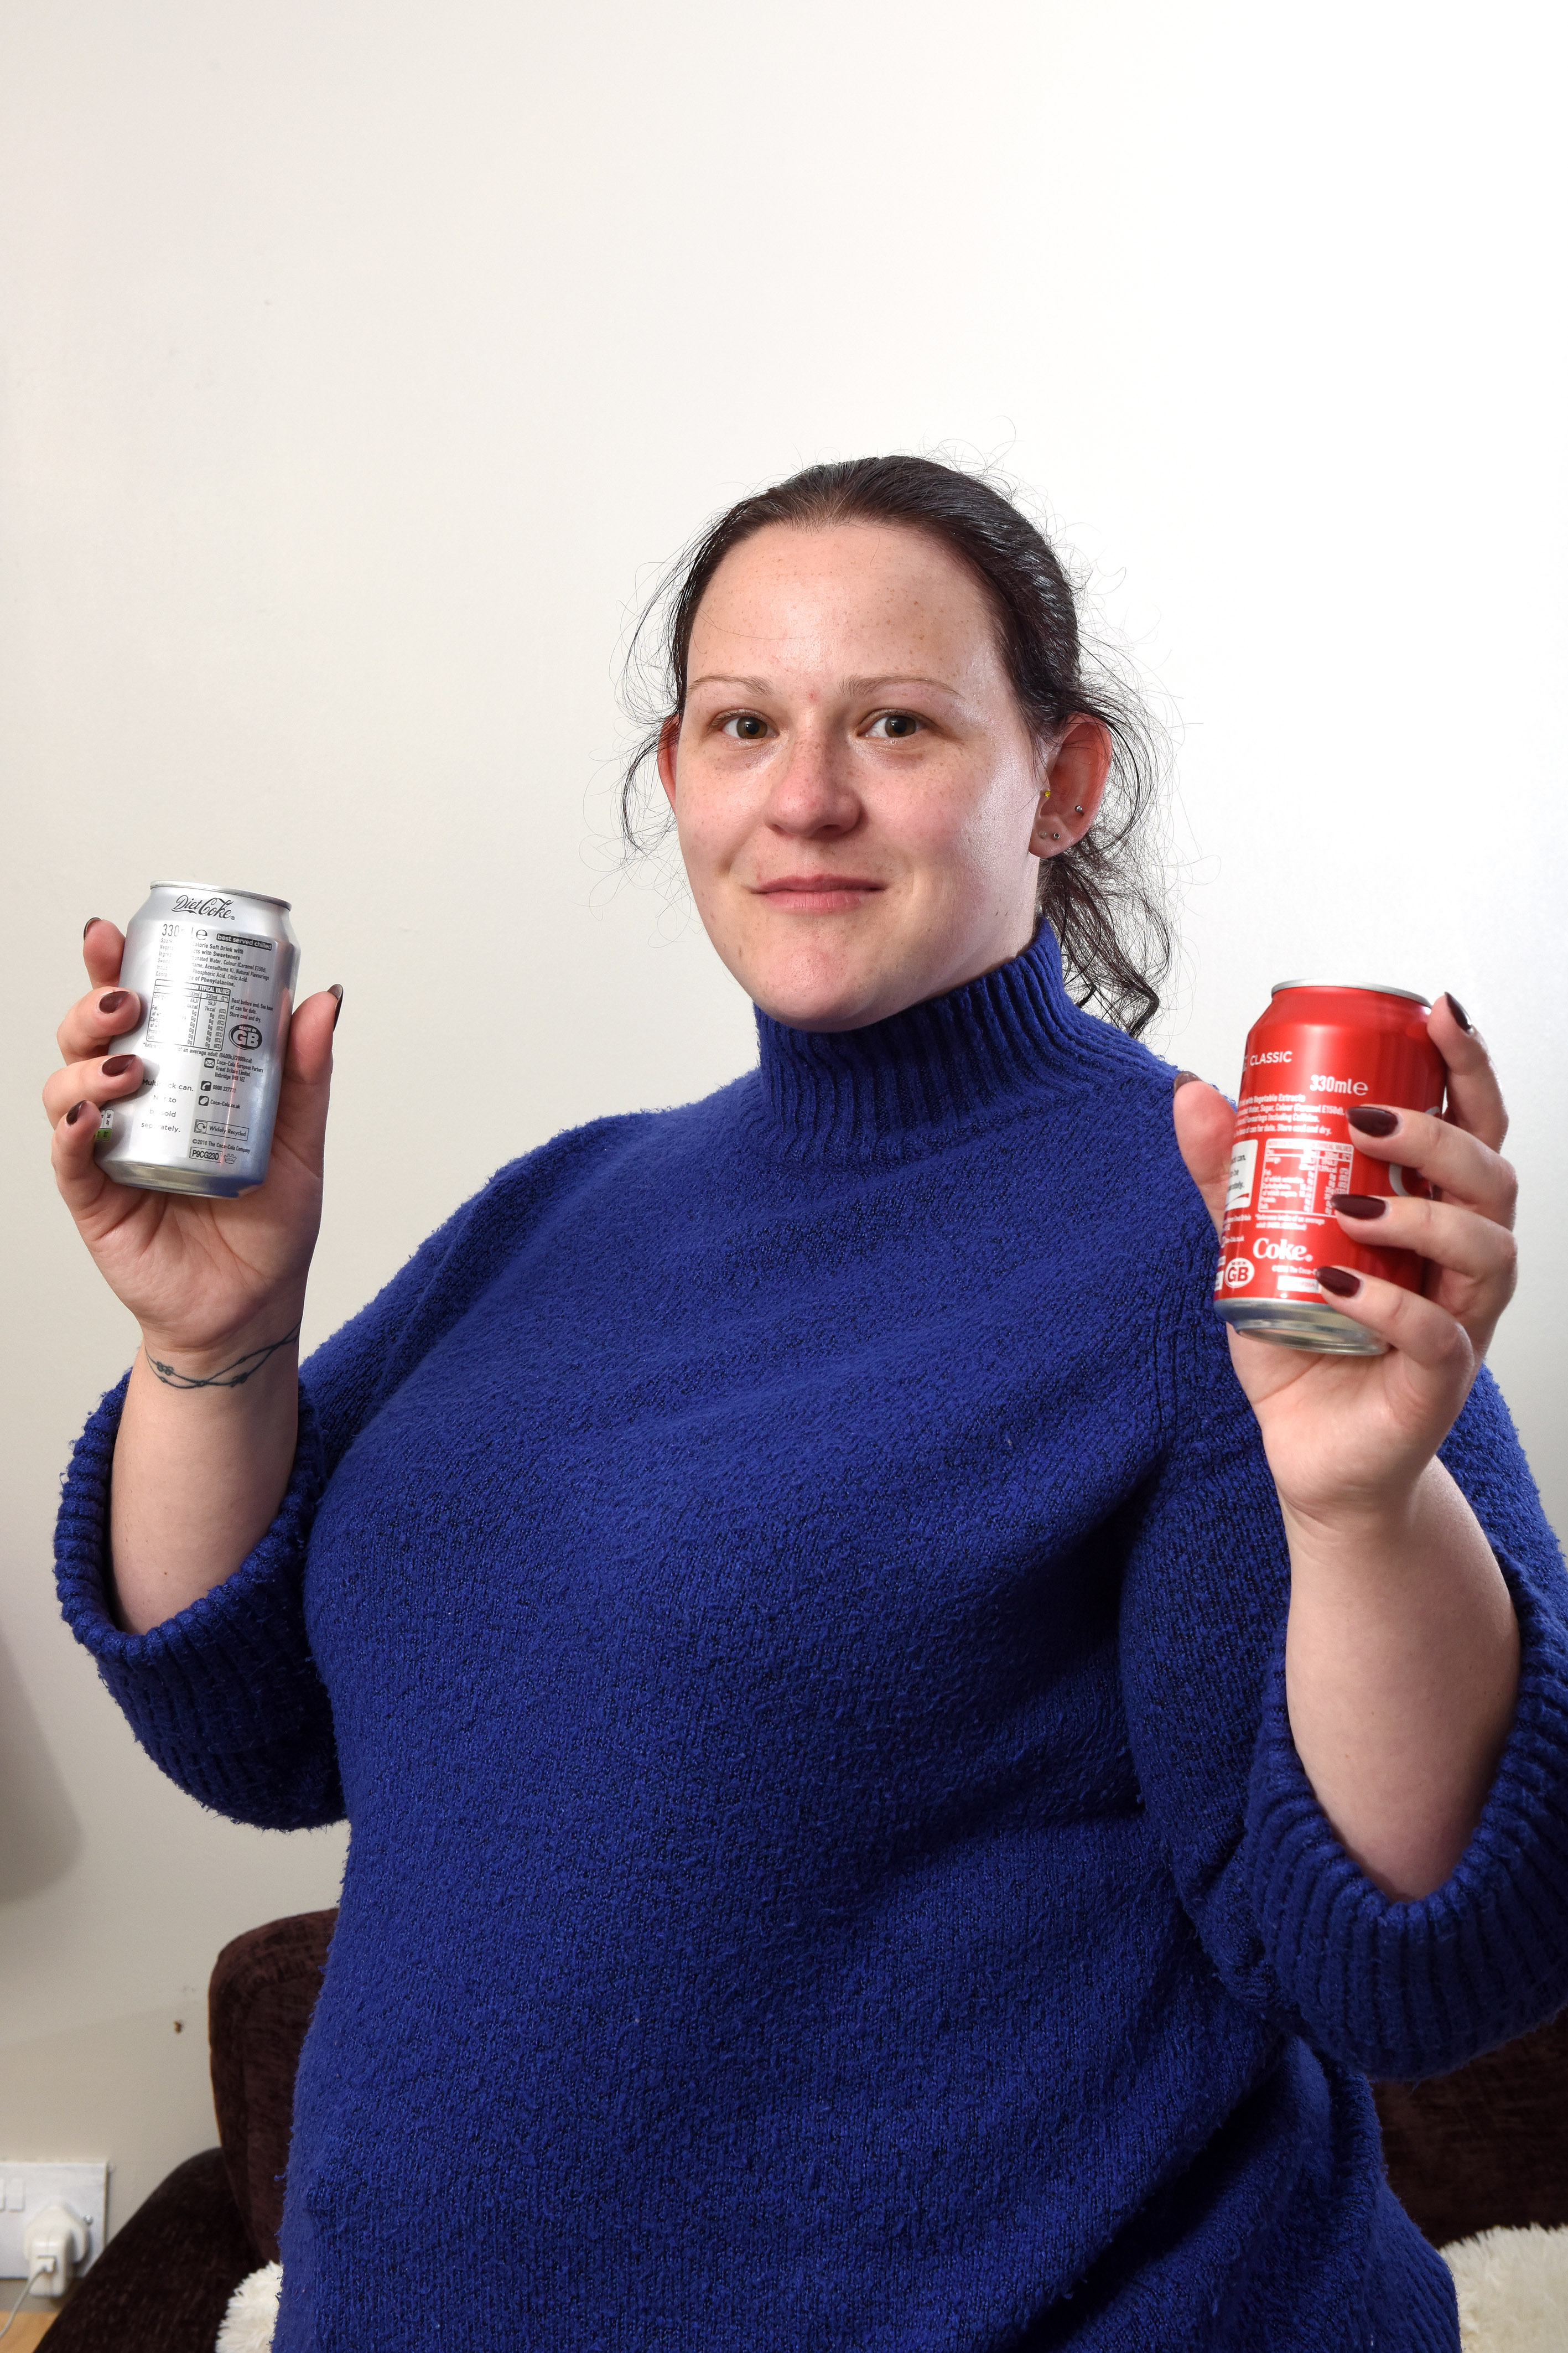 Elizabeth Perkins with two a can of diet cola which she is allergic to and a can of regular cola which she can have. [Photo: Caters]